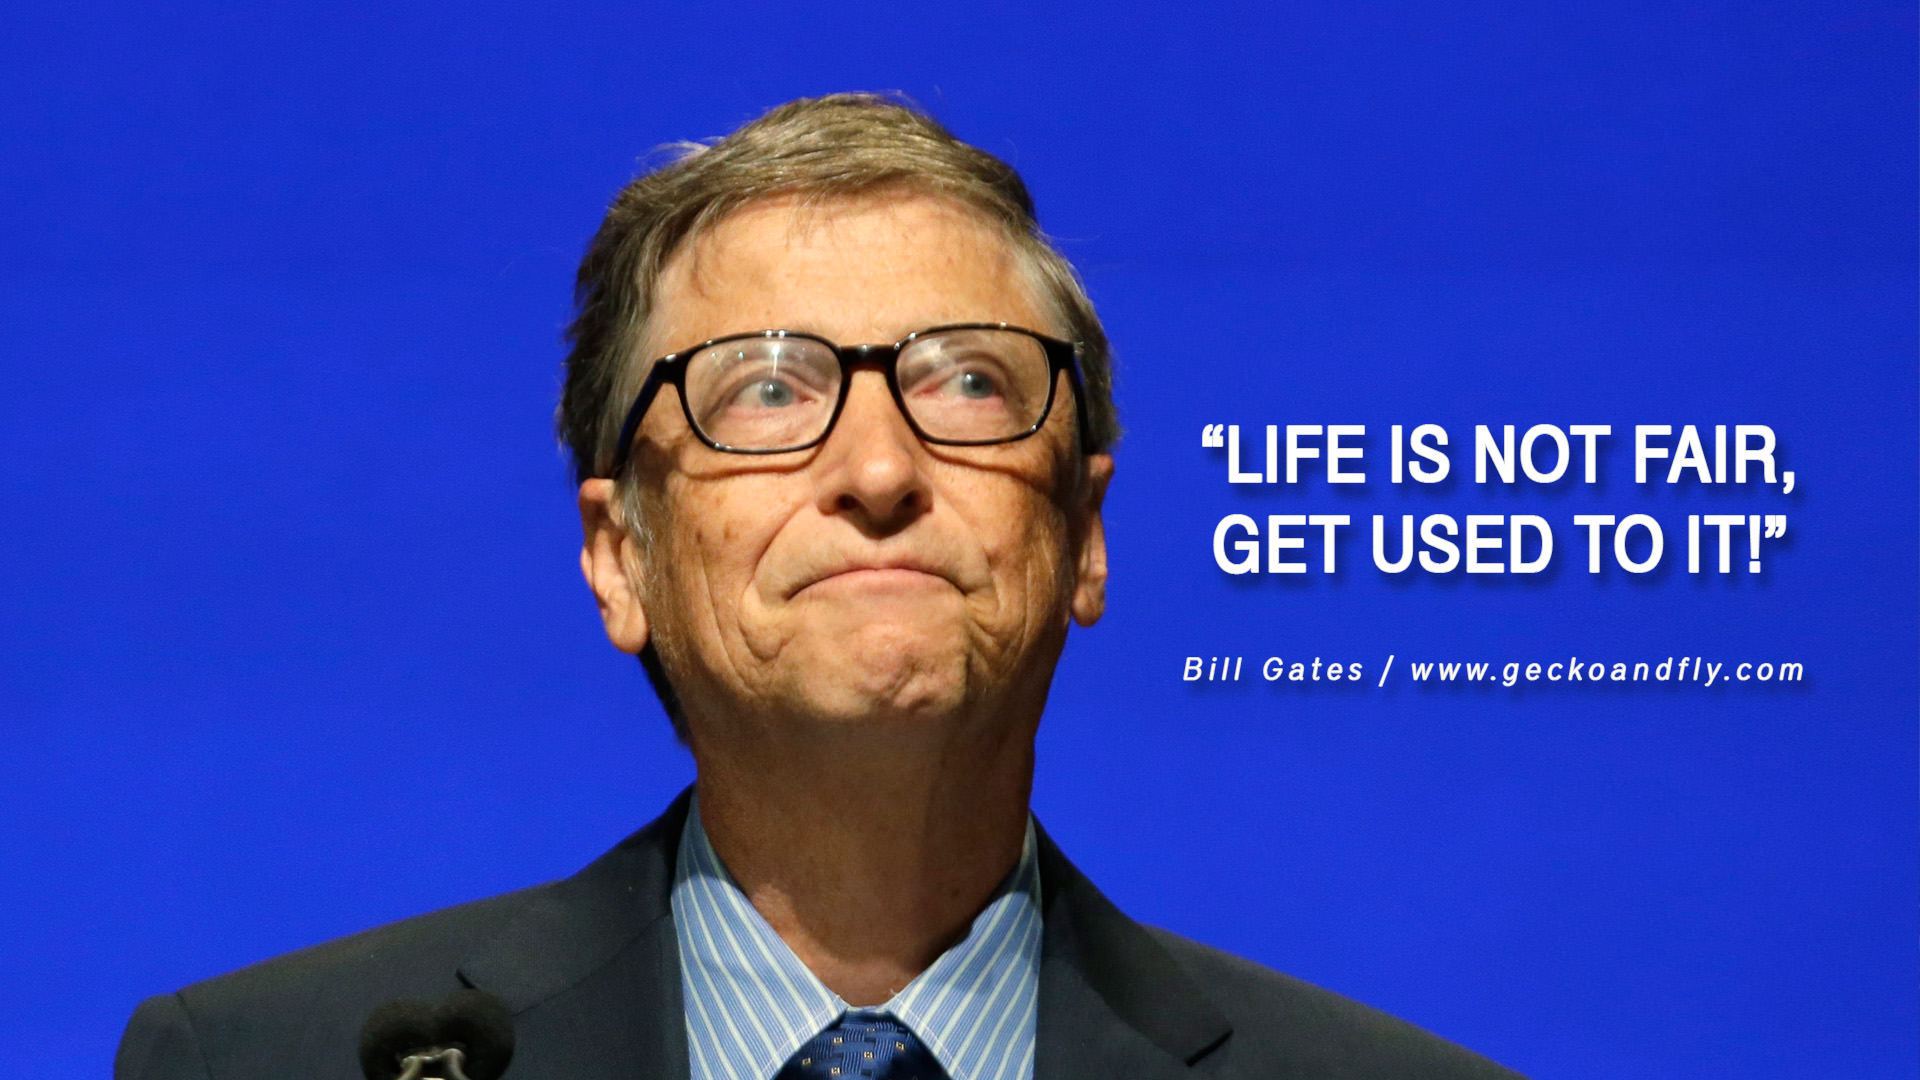 Quote Wallpaper For Men Desktop Life Is Not Fair Pictures Photos And Images For Facebook